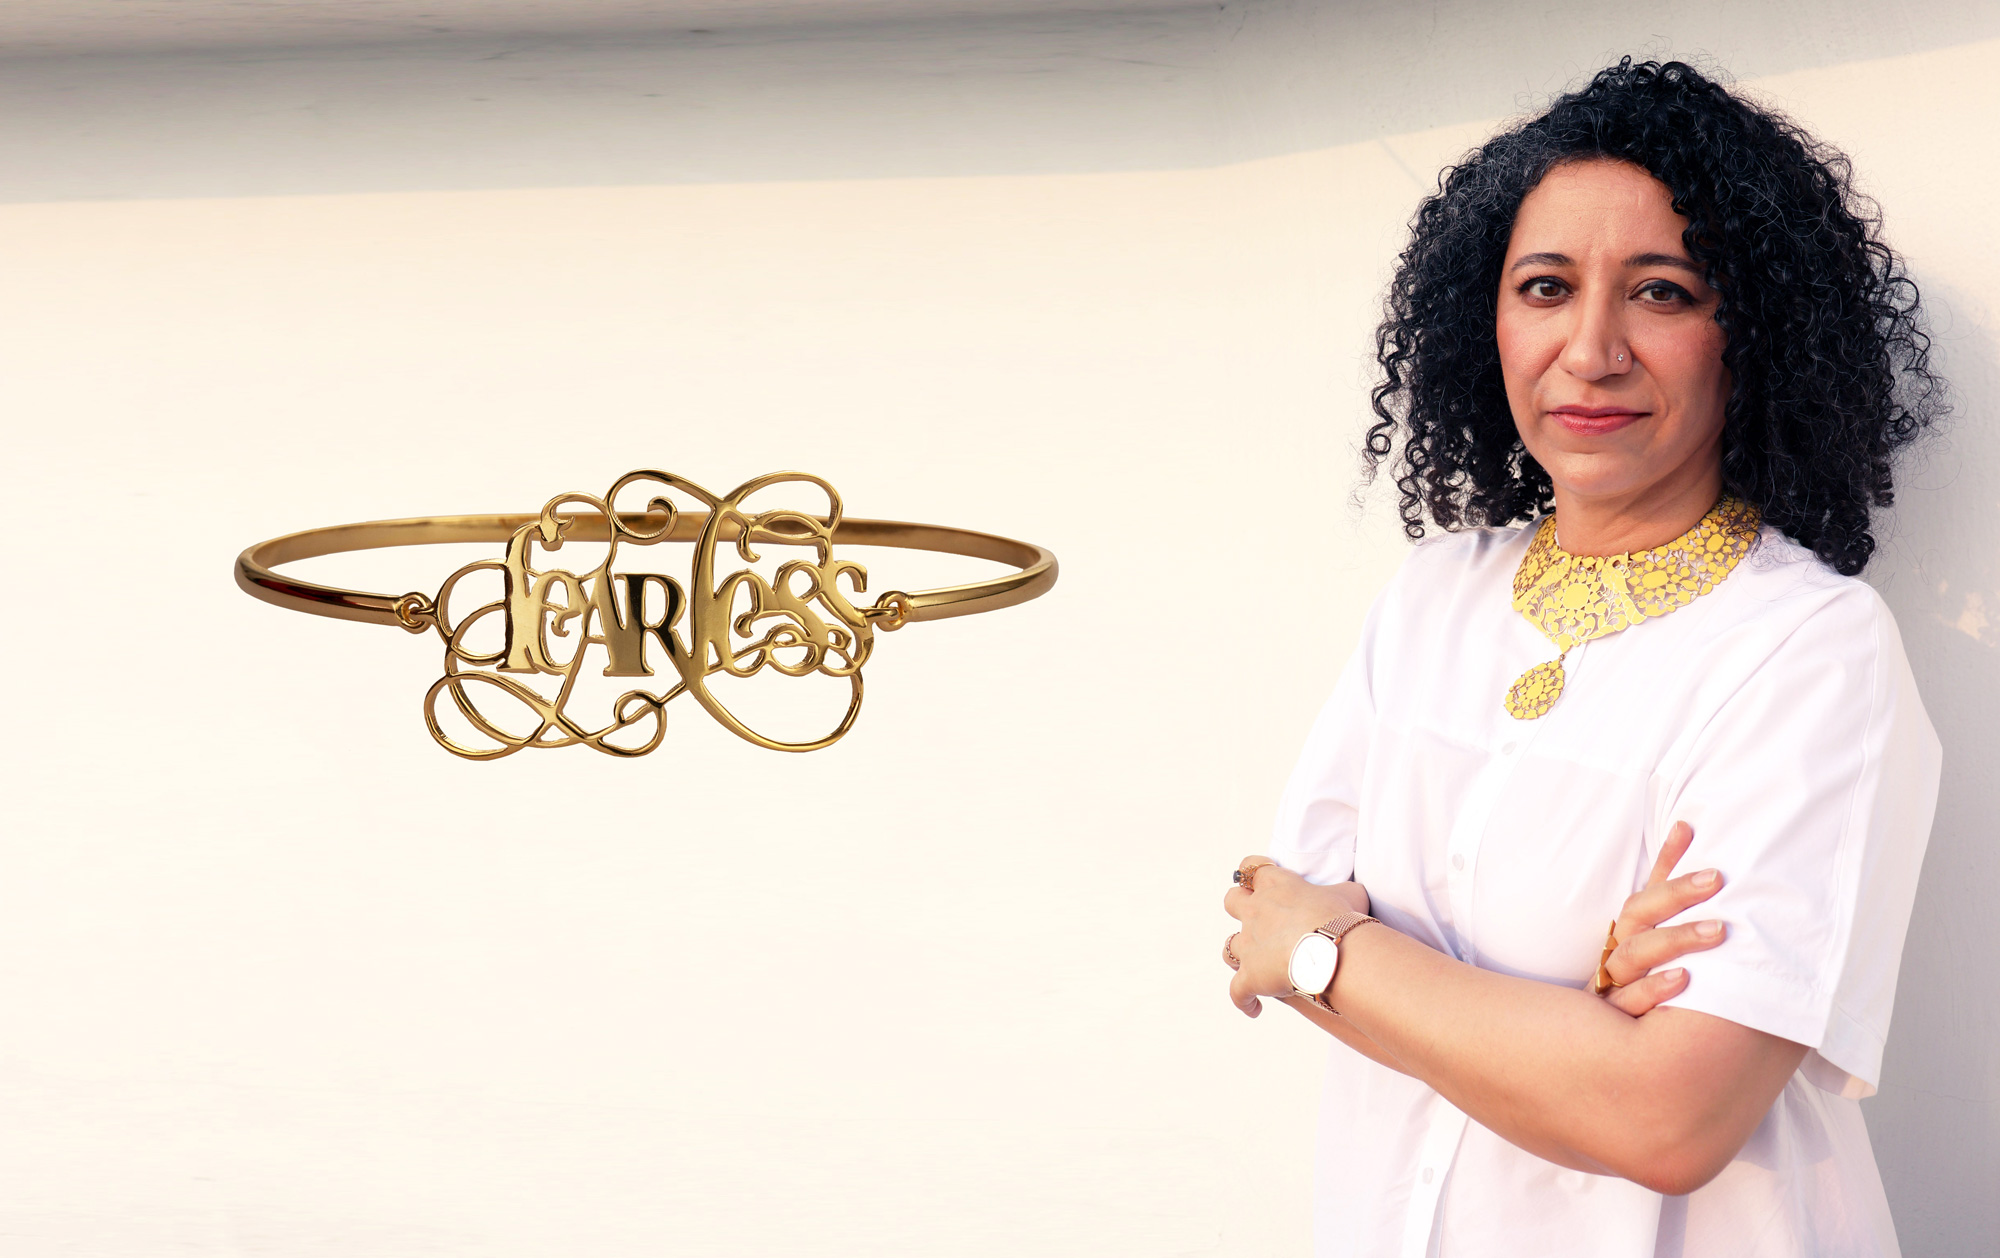 Her Jewellery Has a Message for Women: Be Fierce, Be Fearless, Be Irrepressible